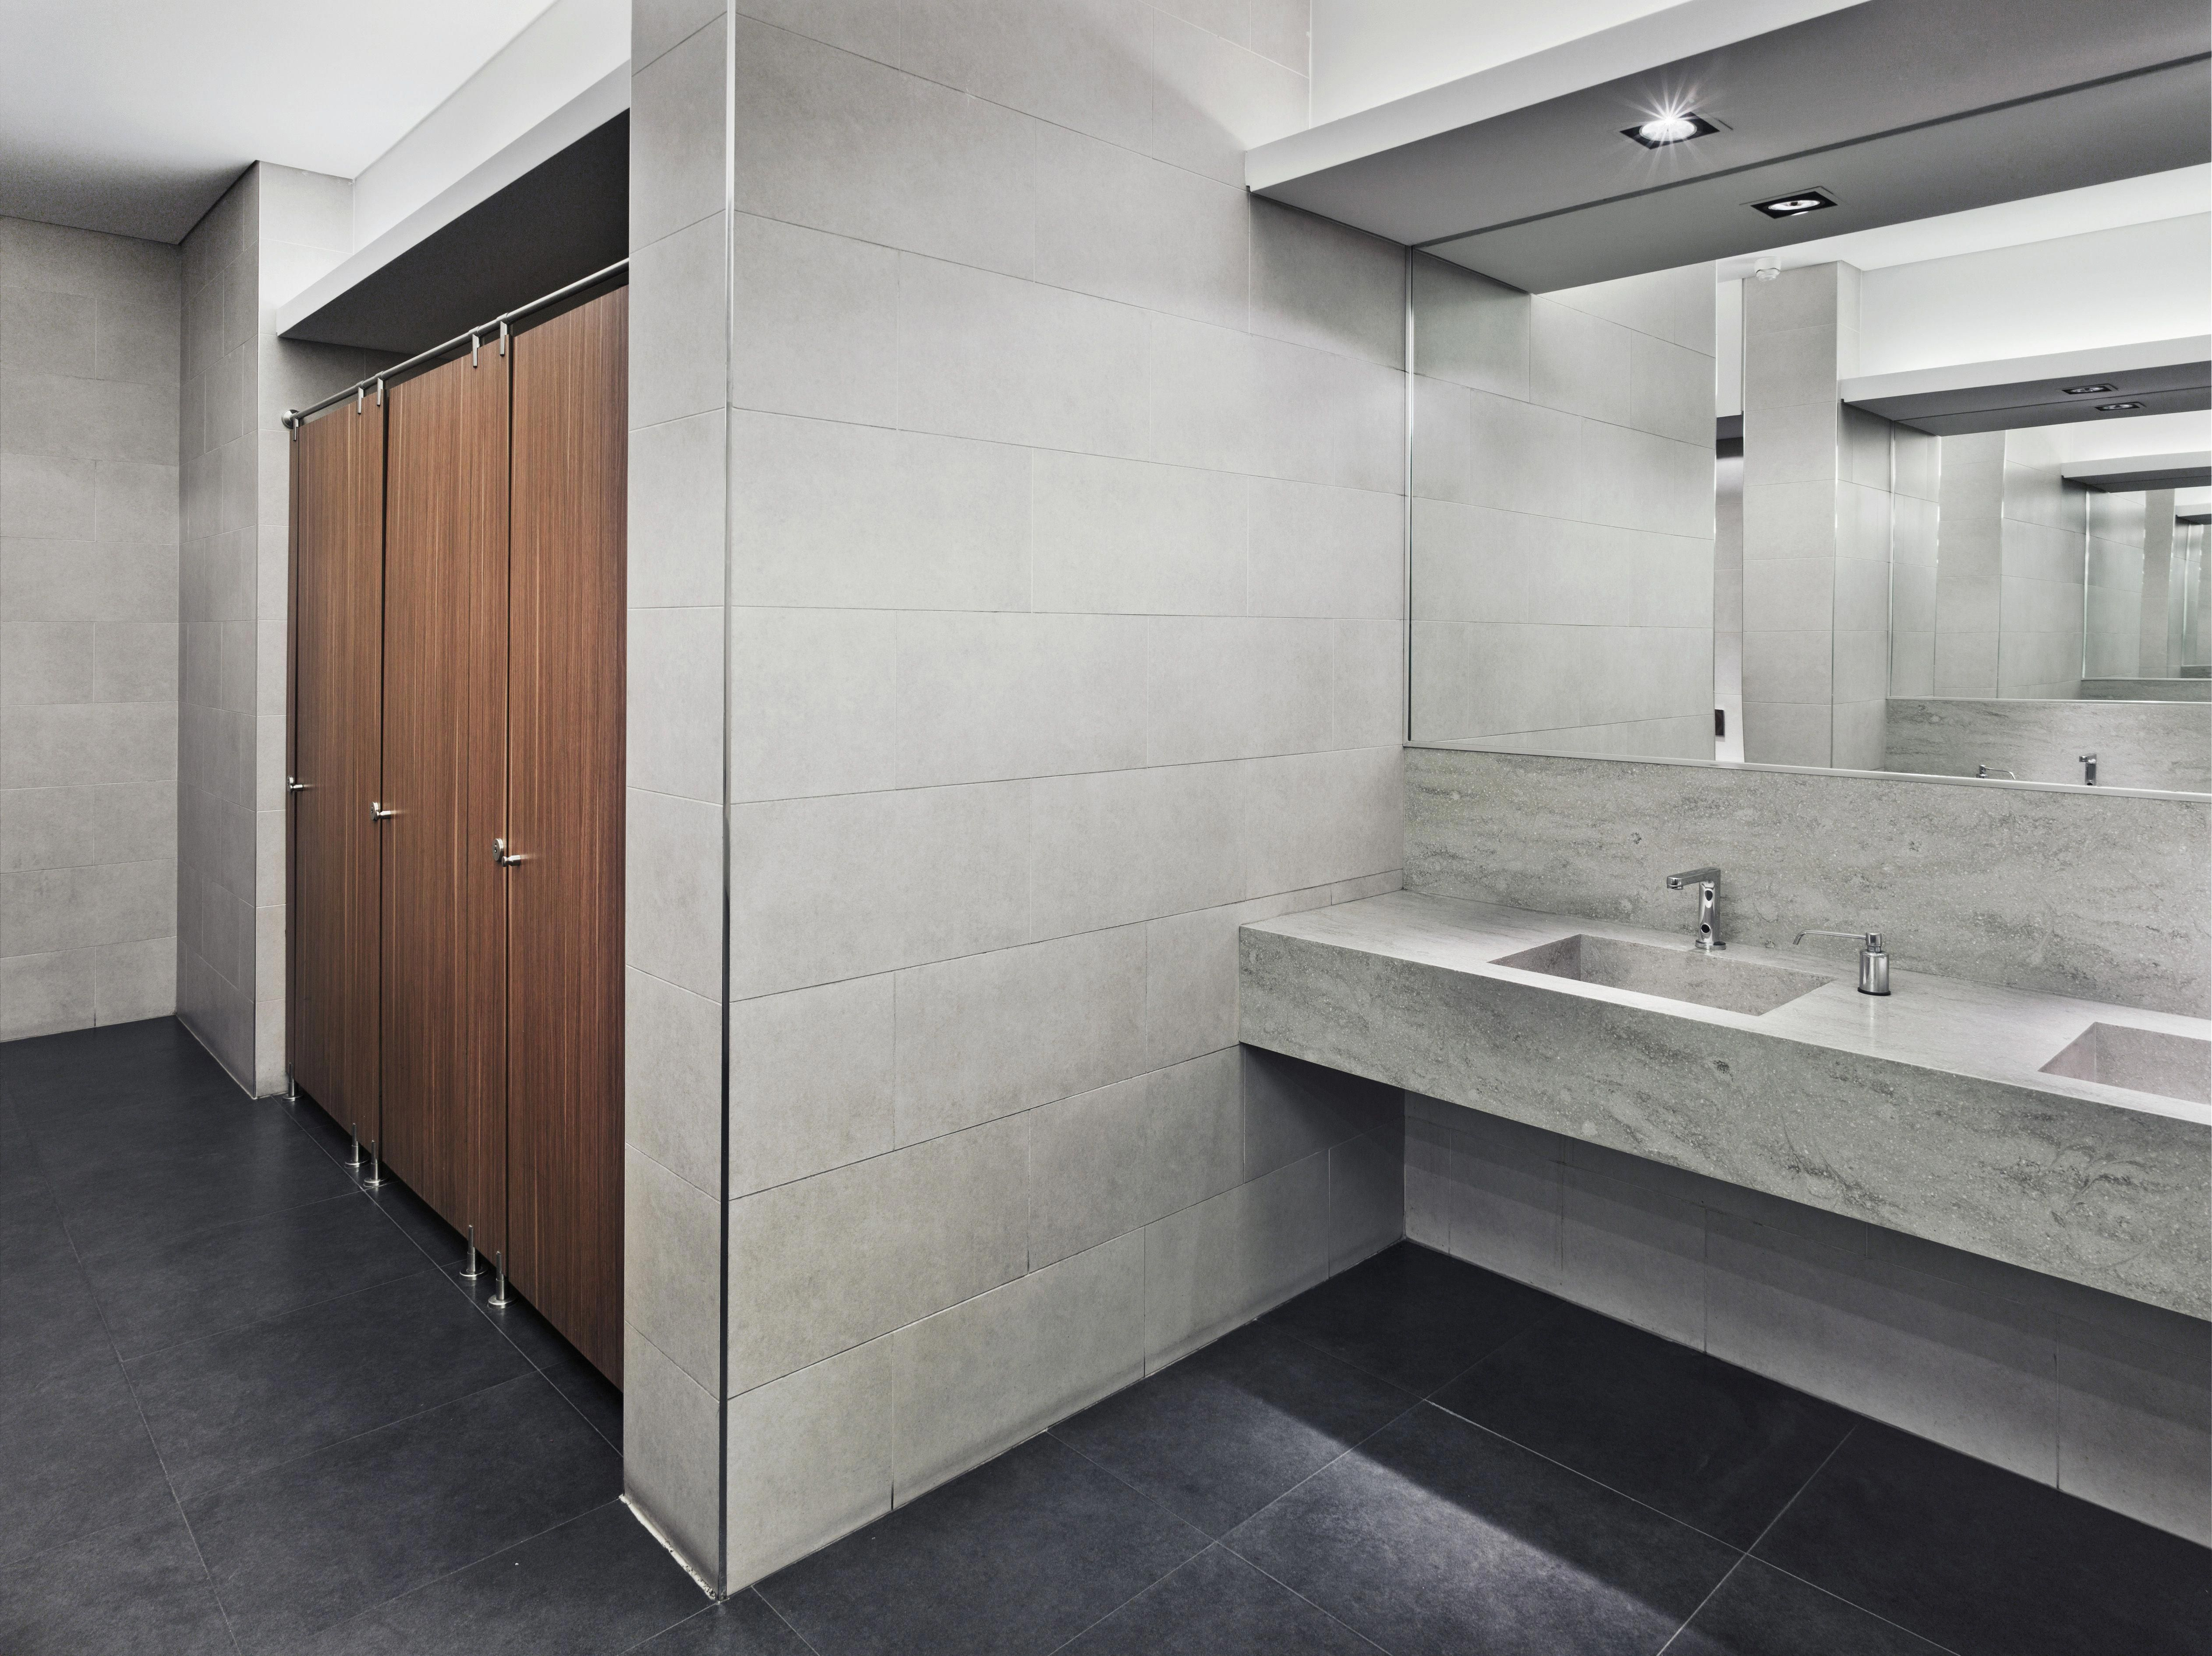 Commercial bathroom flooring must handle water, stains